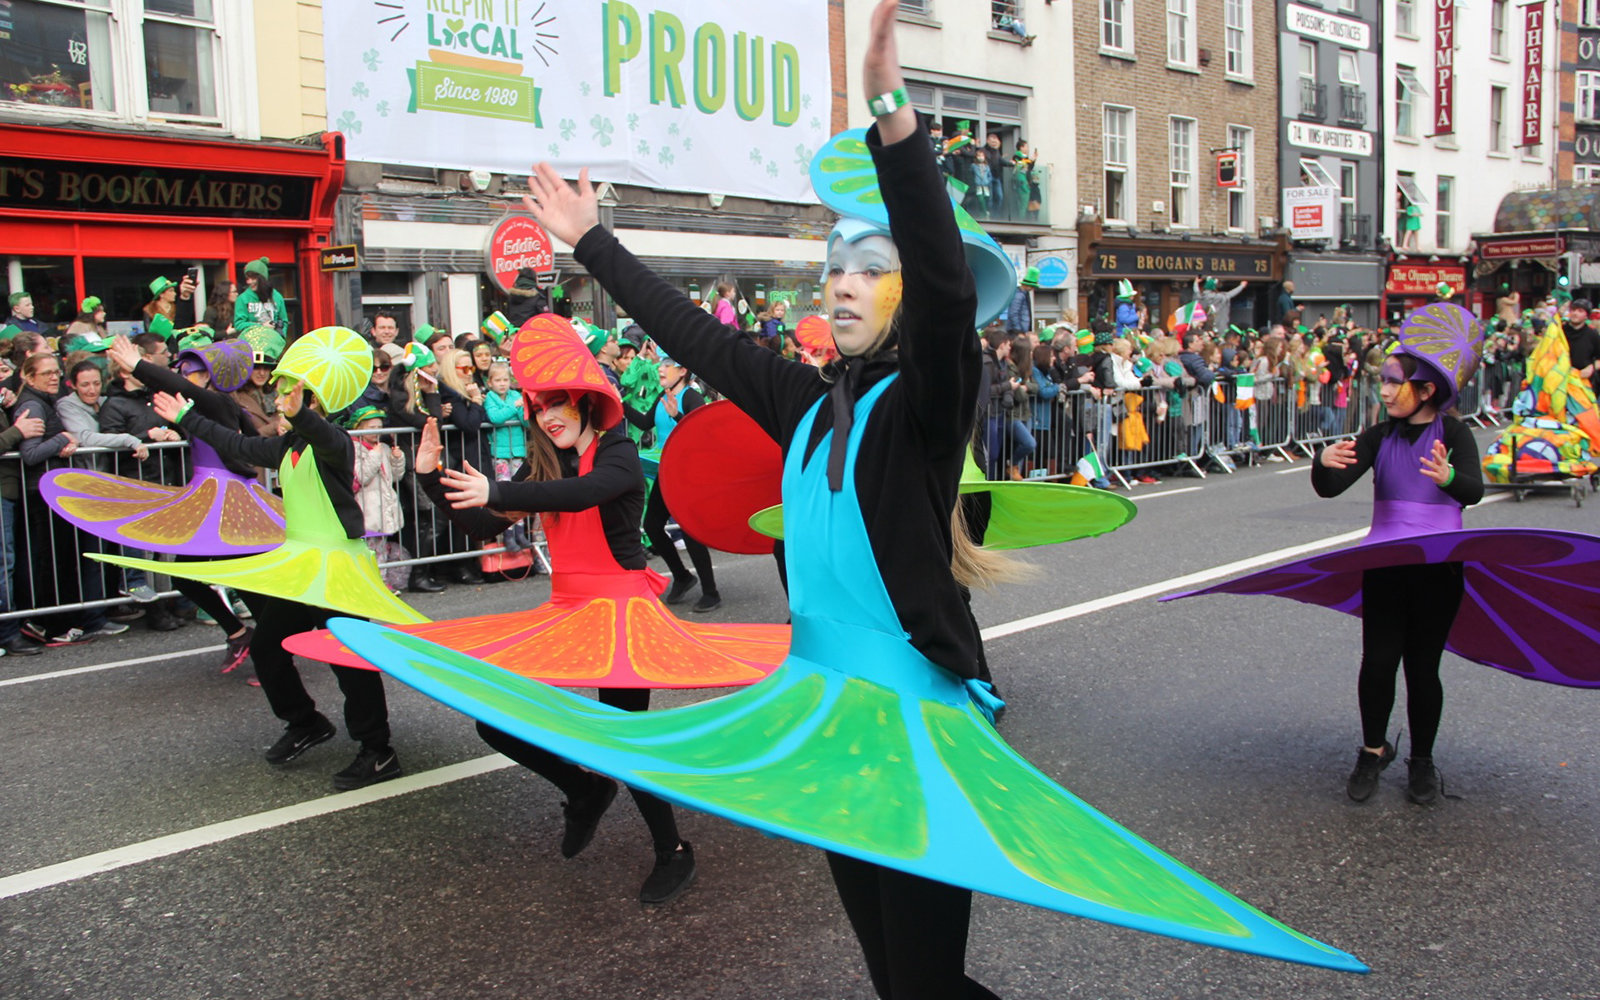 In Photos: Dublin on St. Patrick's Day